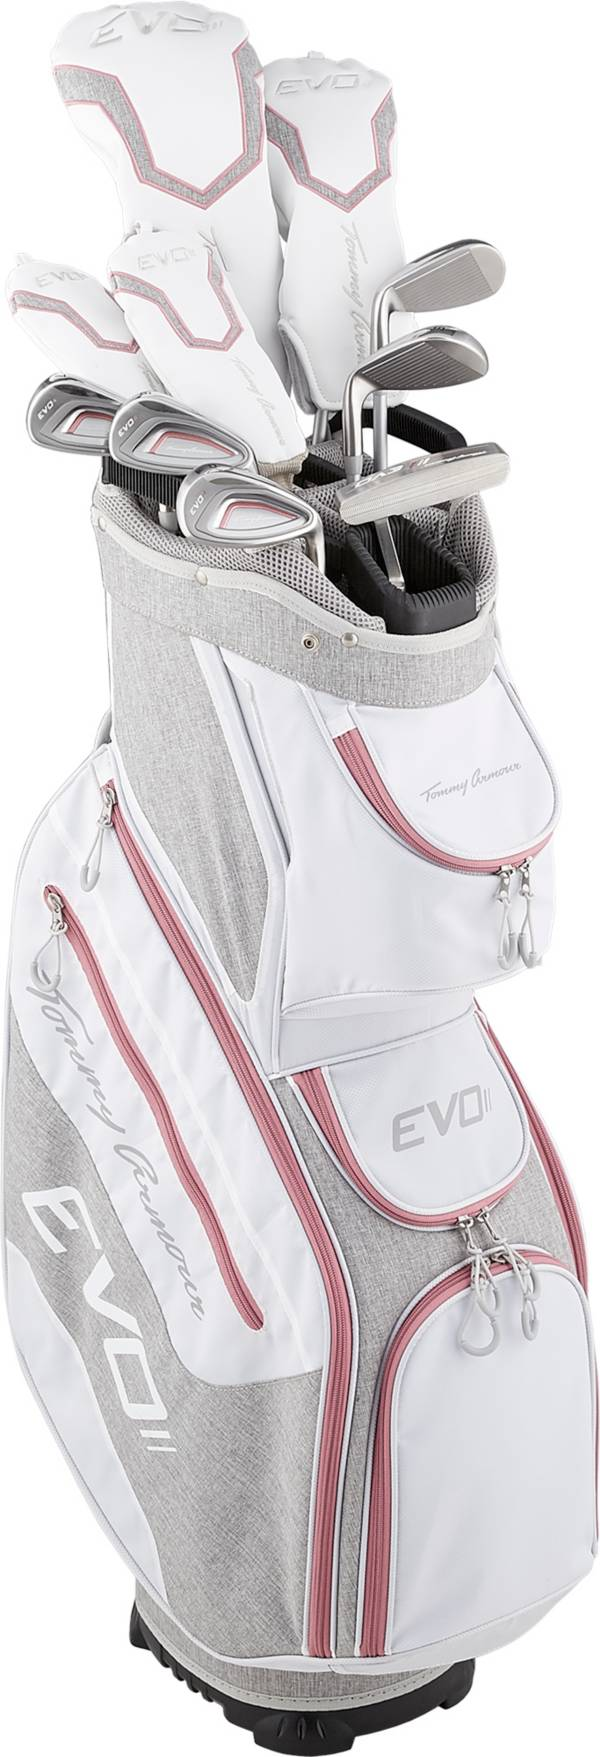 Tommy Armour 2020 Women's EVO 15-Piece Complete Set – (Graphite) product image